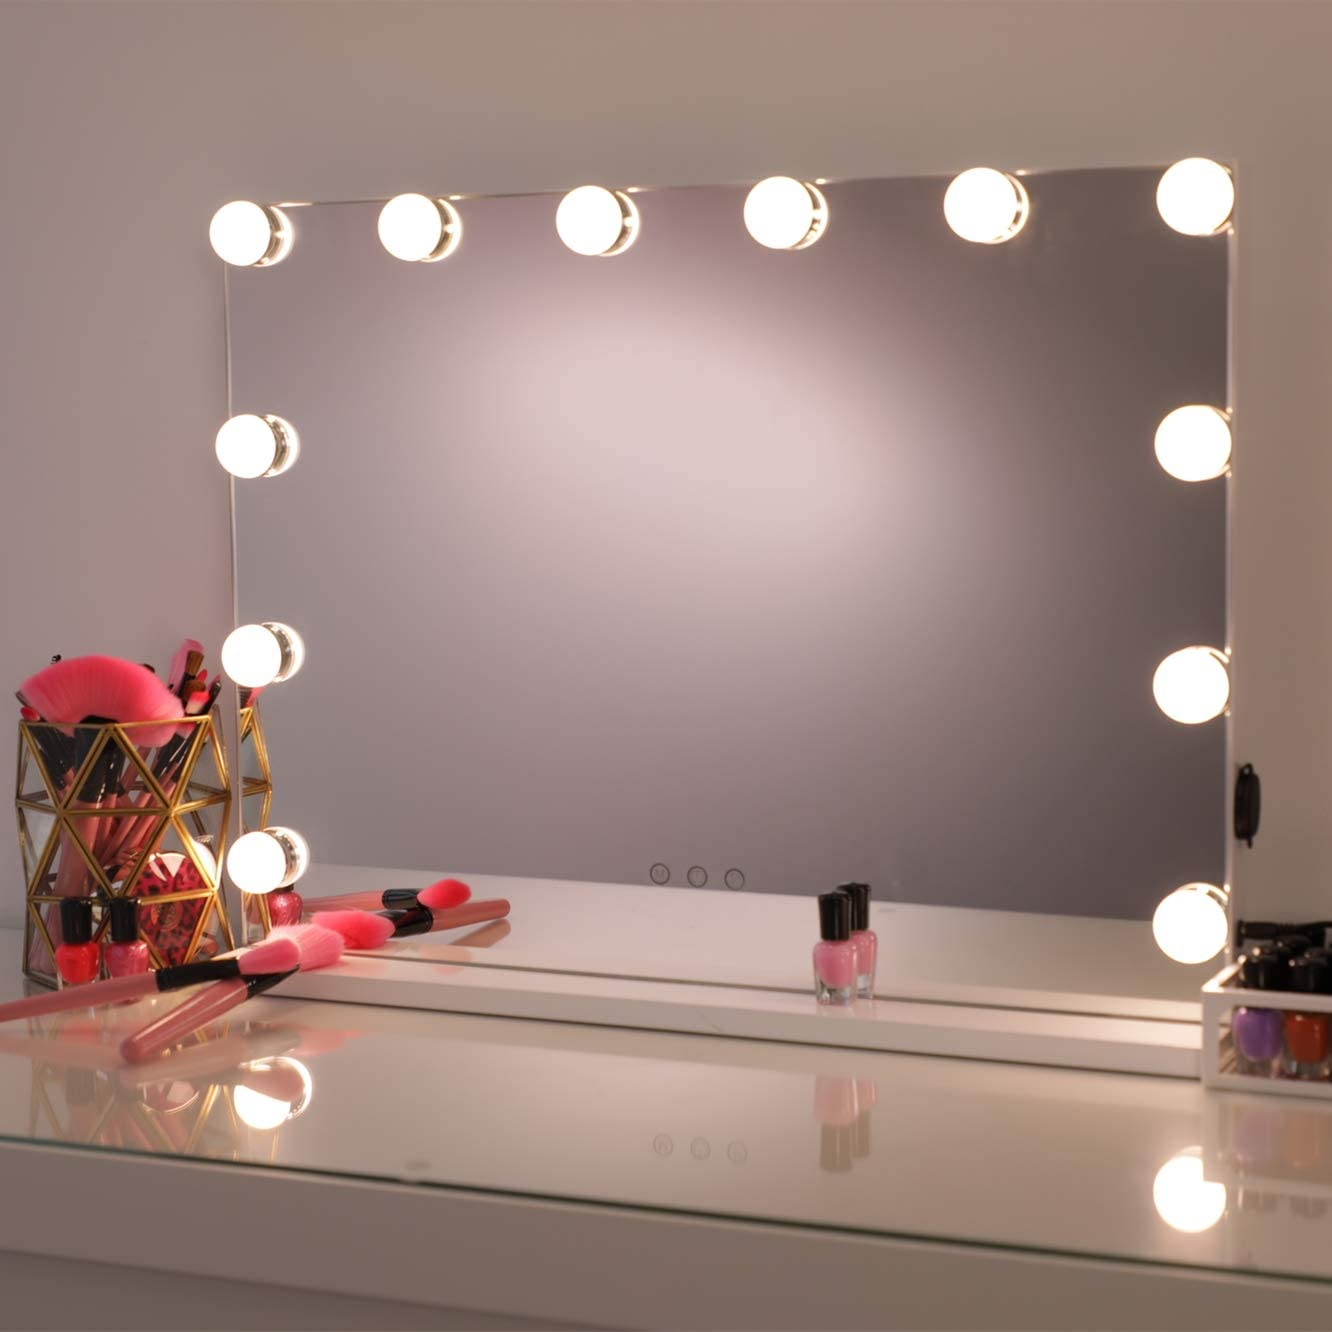 Amazon Com Hollywood Mirror Makeup Vanity Mirror With Lights Professional Hollywood Style Smart Touch Design Dimmable Bulbs In 3 Color Tone Modes Usb Charging Port W 22 8 X H 18 2 White Home Kitchen